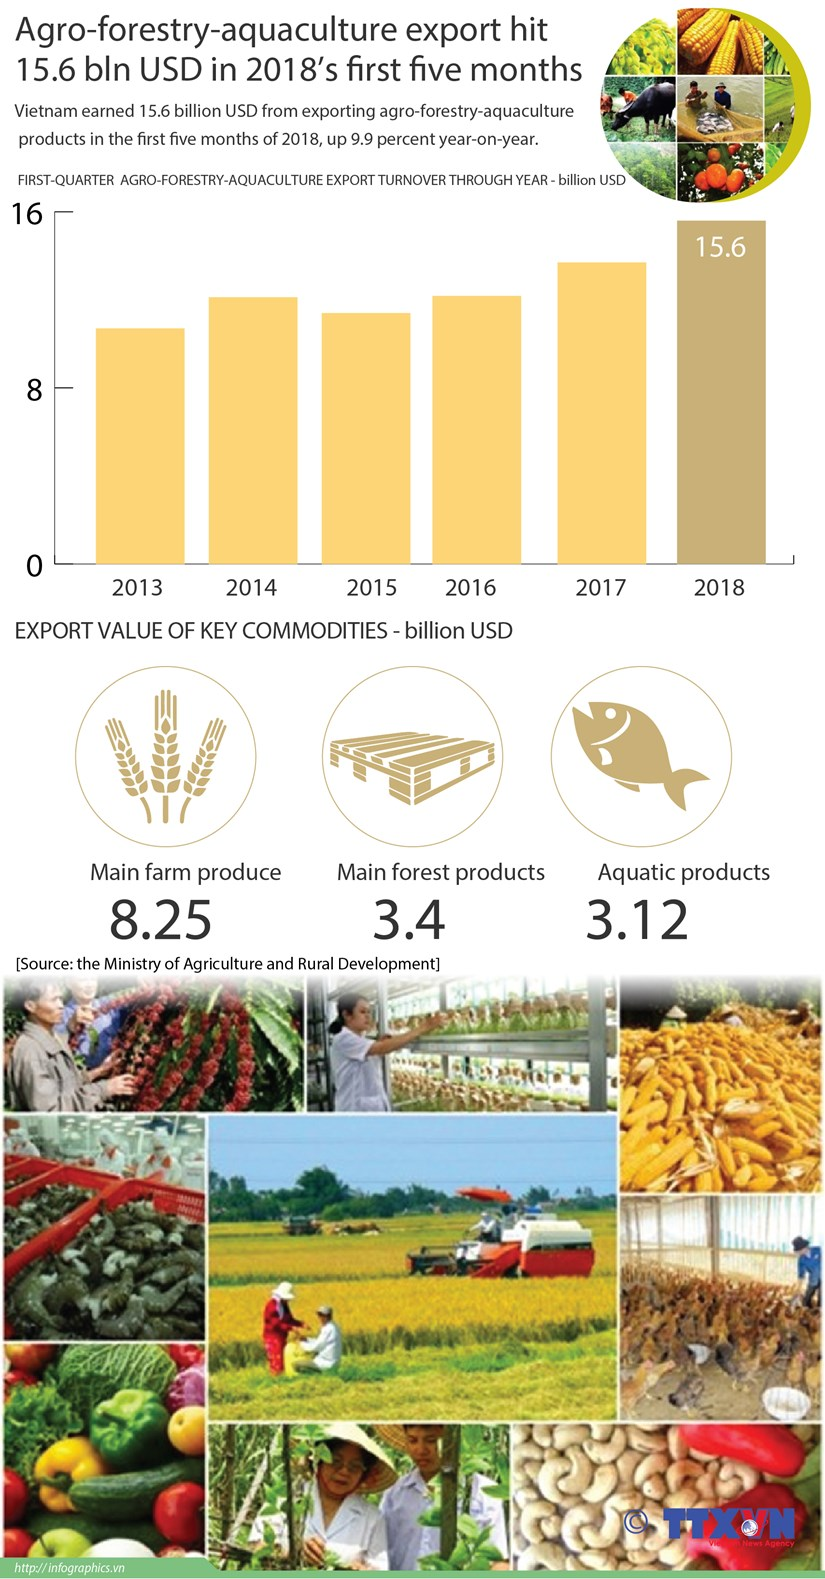 Agro-forestry-aquaculture export hit 15.6 bln in five months hinh anh 1